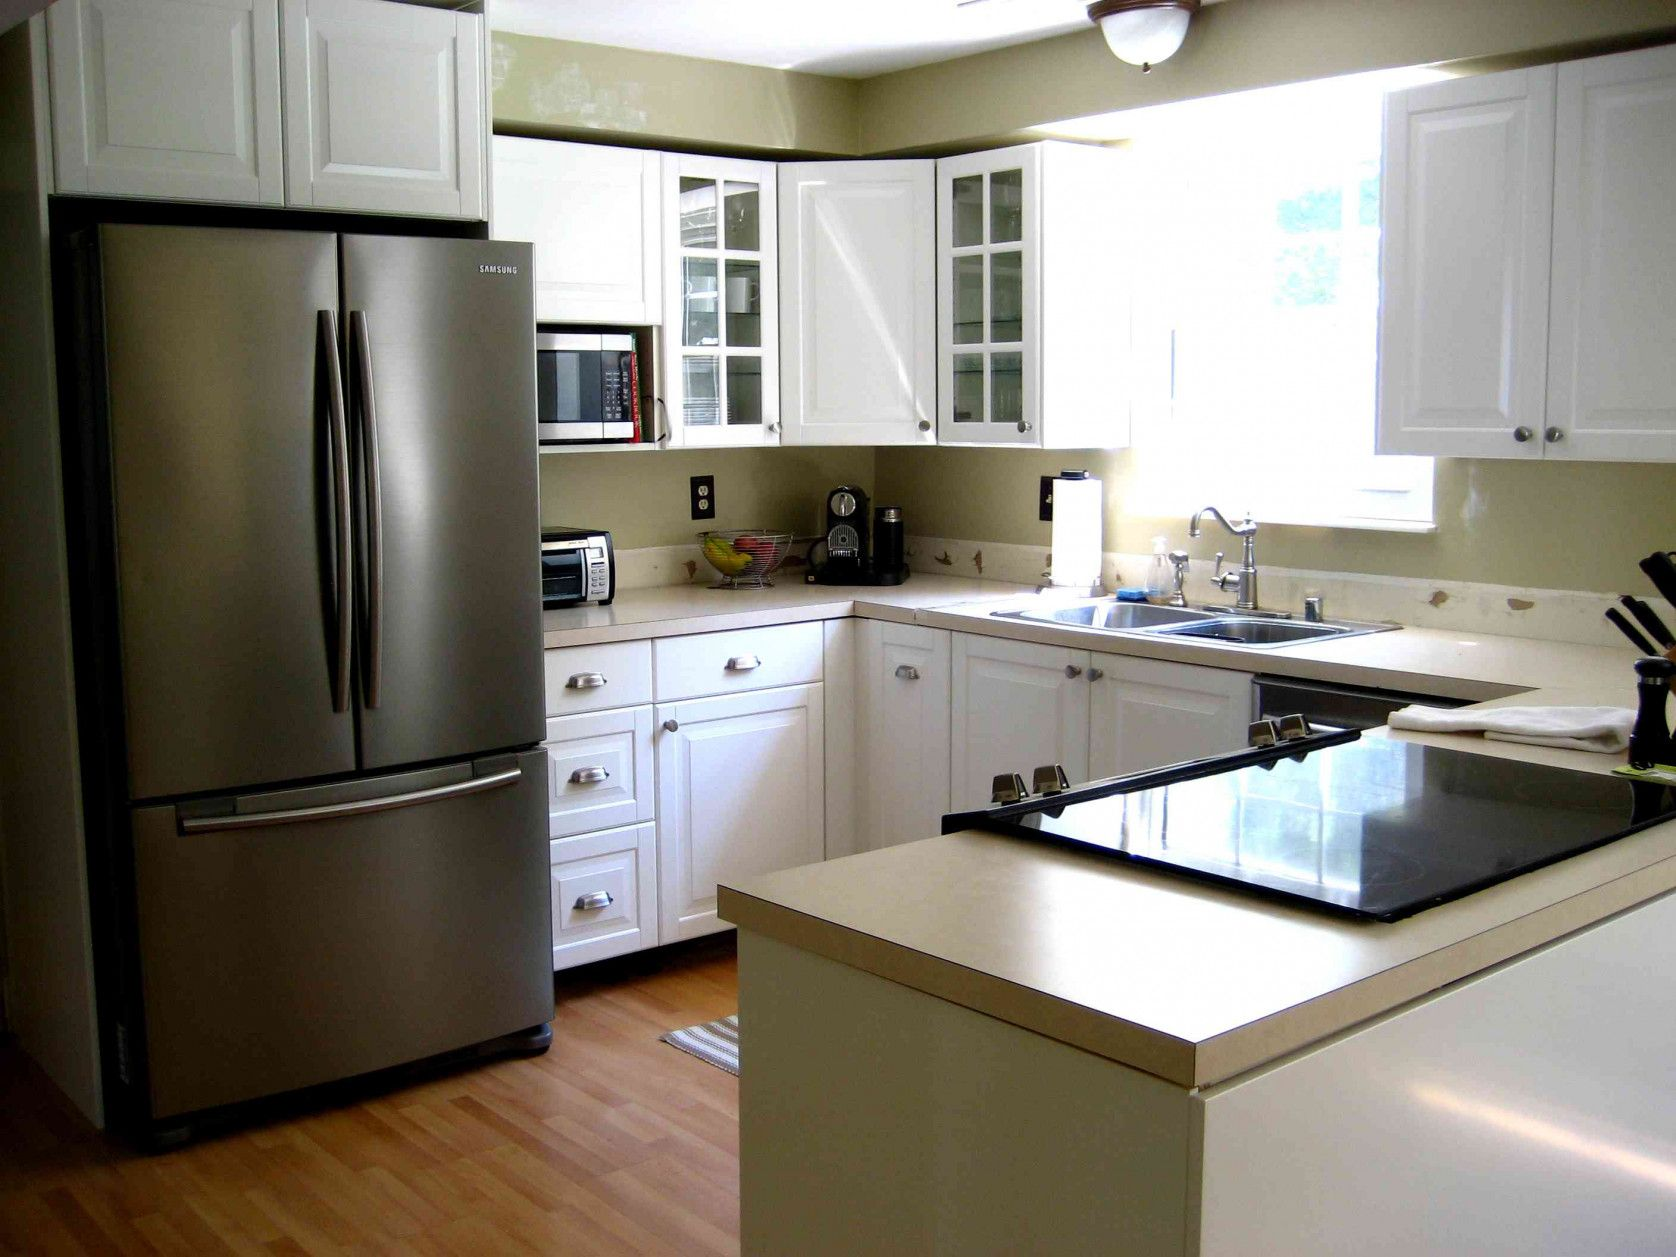 77 Chinese Kitchen Cabinets Reviews Unique Kitchen Backsplash Ideas Check More At Http Ikea Kitchen Design Cost Of Kitchen Cabinets Kitchen Designs Layout